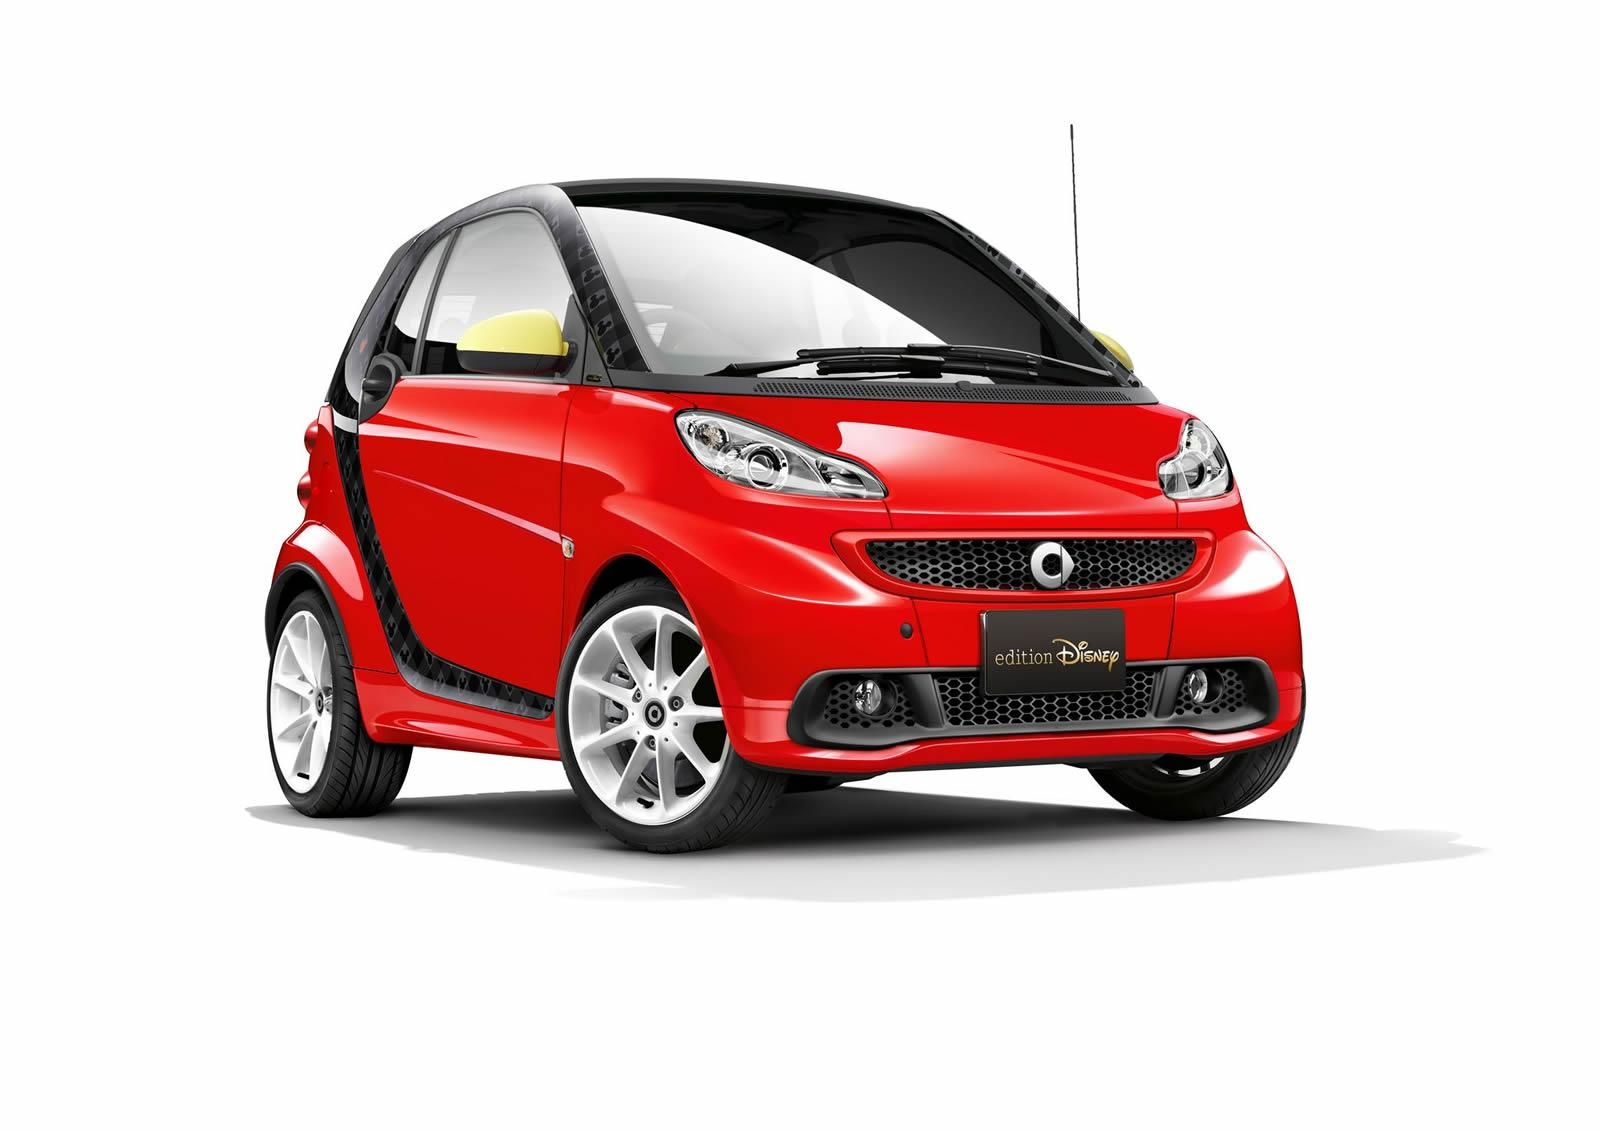 Smart has produced for the japanese market only the disney edition of the fortwo electric